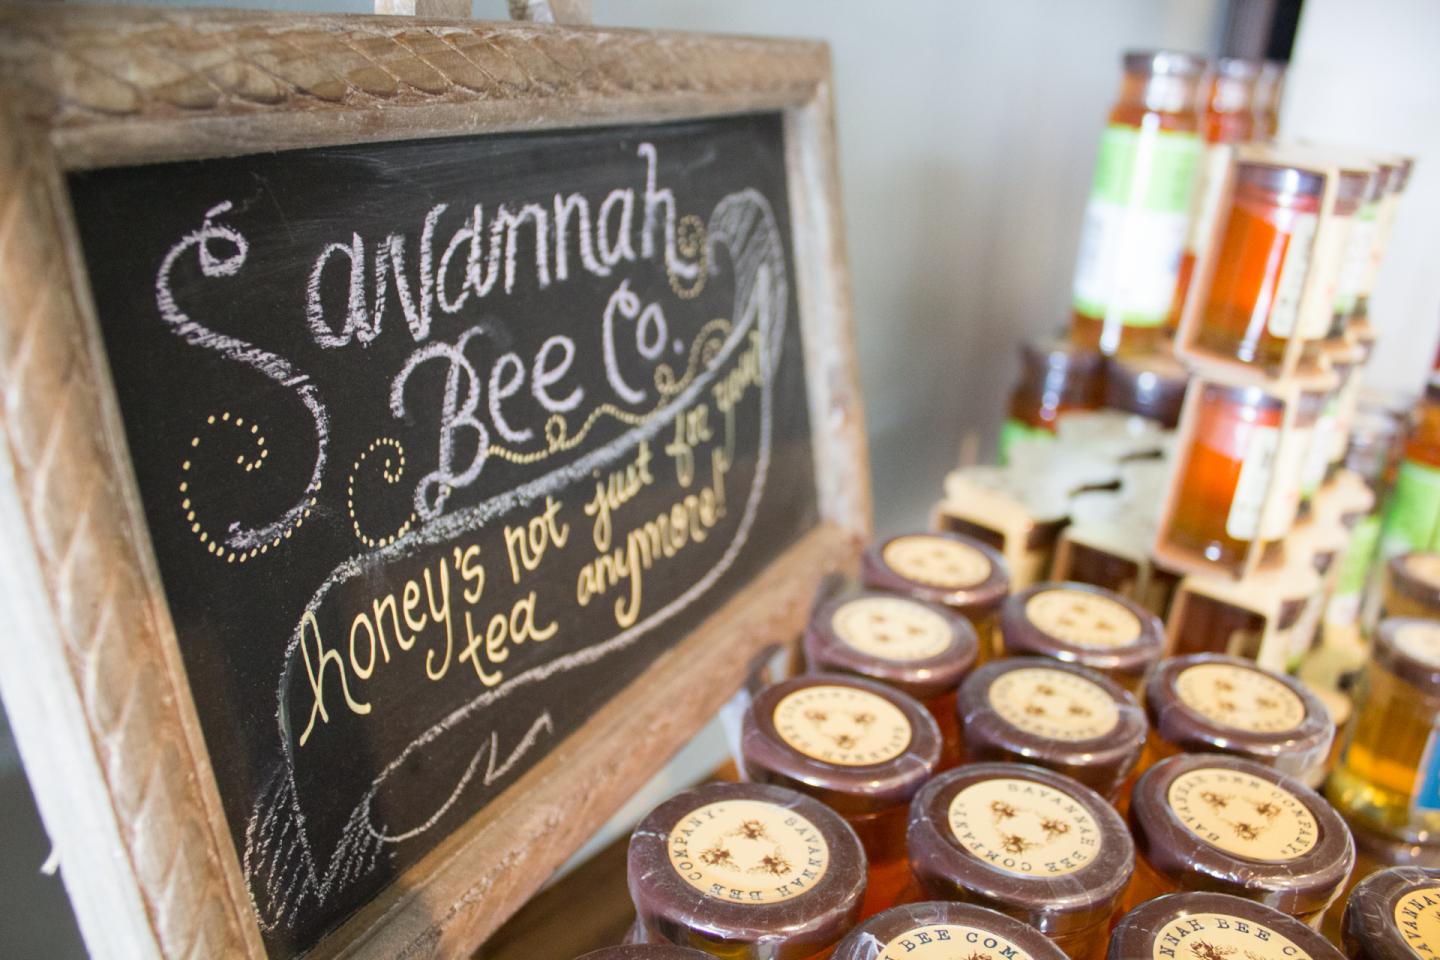 Savannah Bee Co. Honey